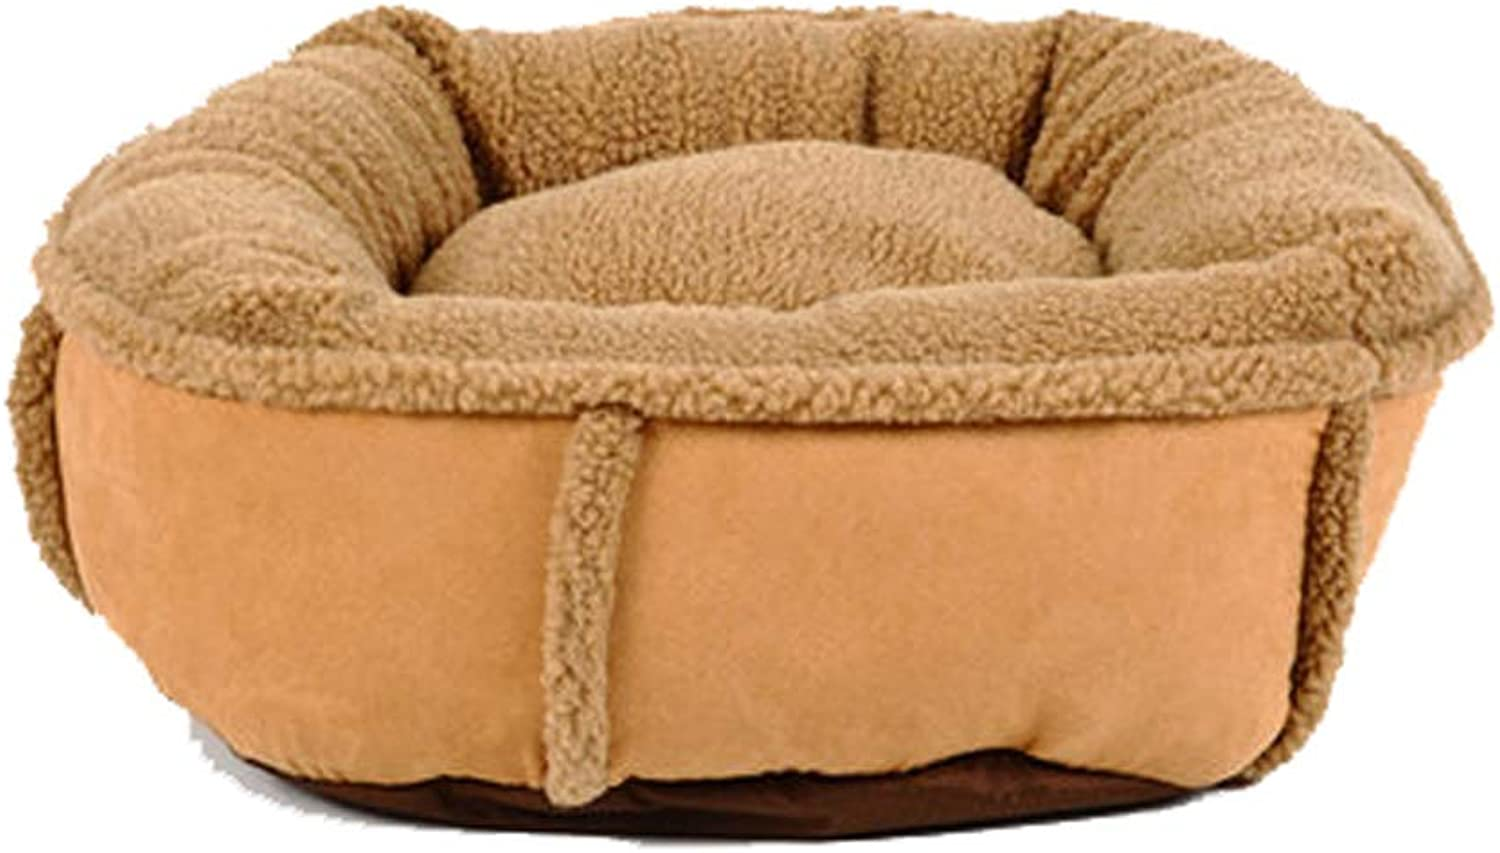 Four Seasons Universal Pet Nest Fully Removable And Washable Small Doublesided Padded Rebound Cotton Dog Cat Litter Mat Bed 2 color Optional 60cm50cm18cm MUMUJIN (color   Brown)